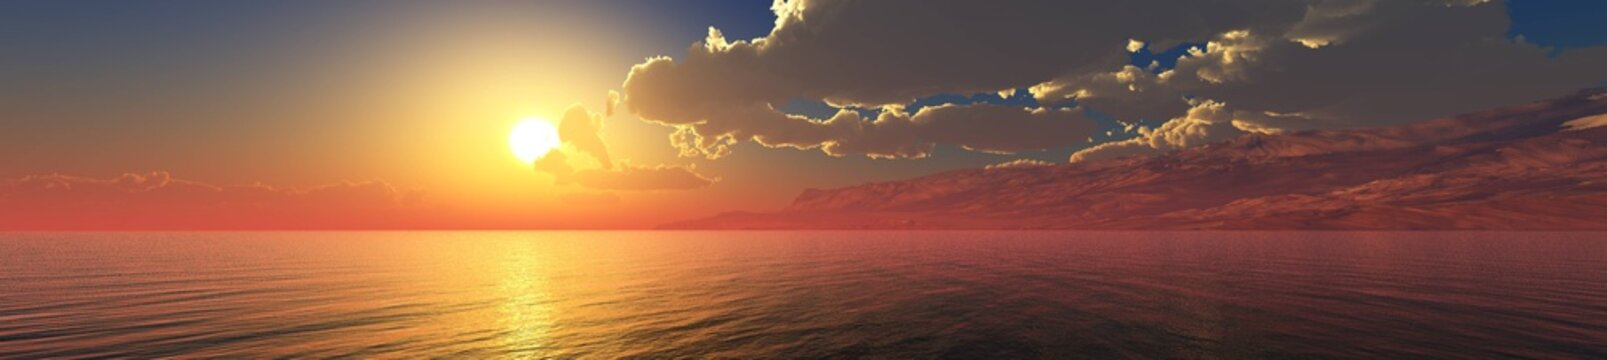 panorama of the ocean sunset, sea sunset, the sun in the clouds over the water, 3D rendering